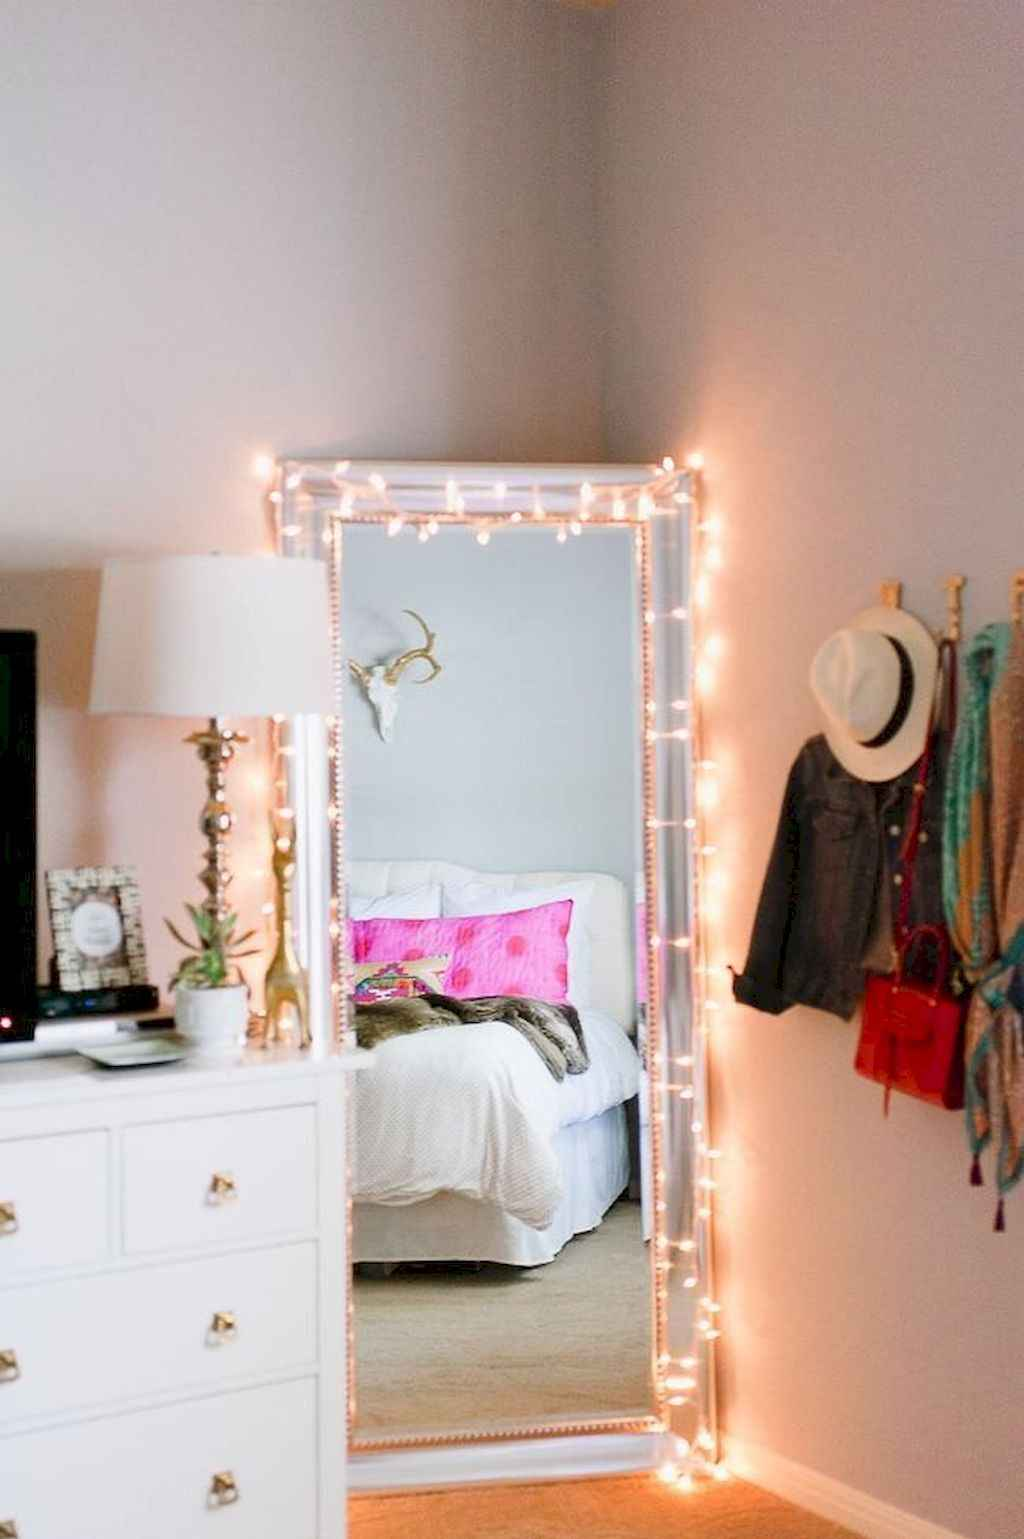 Couples first apartment decorating ideas (93)